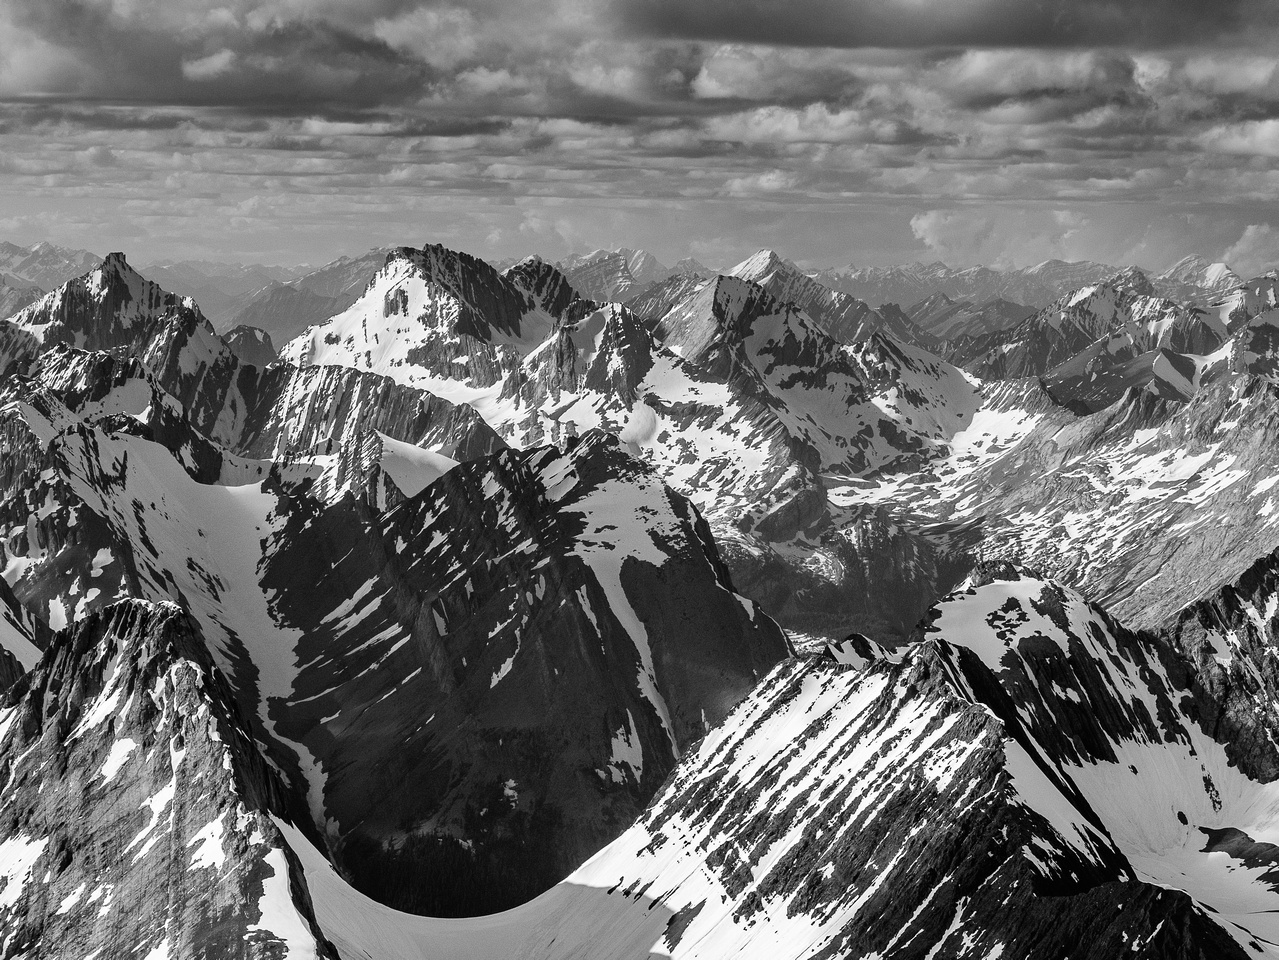 Northover's summit is in the lower left with Putnik and Beatty in the distance.